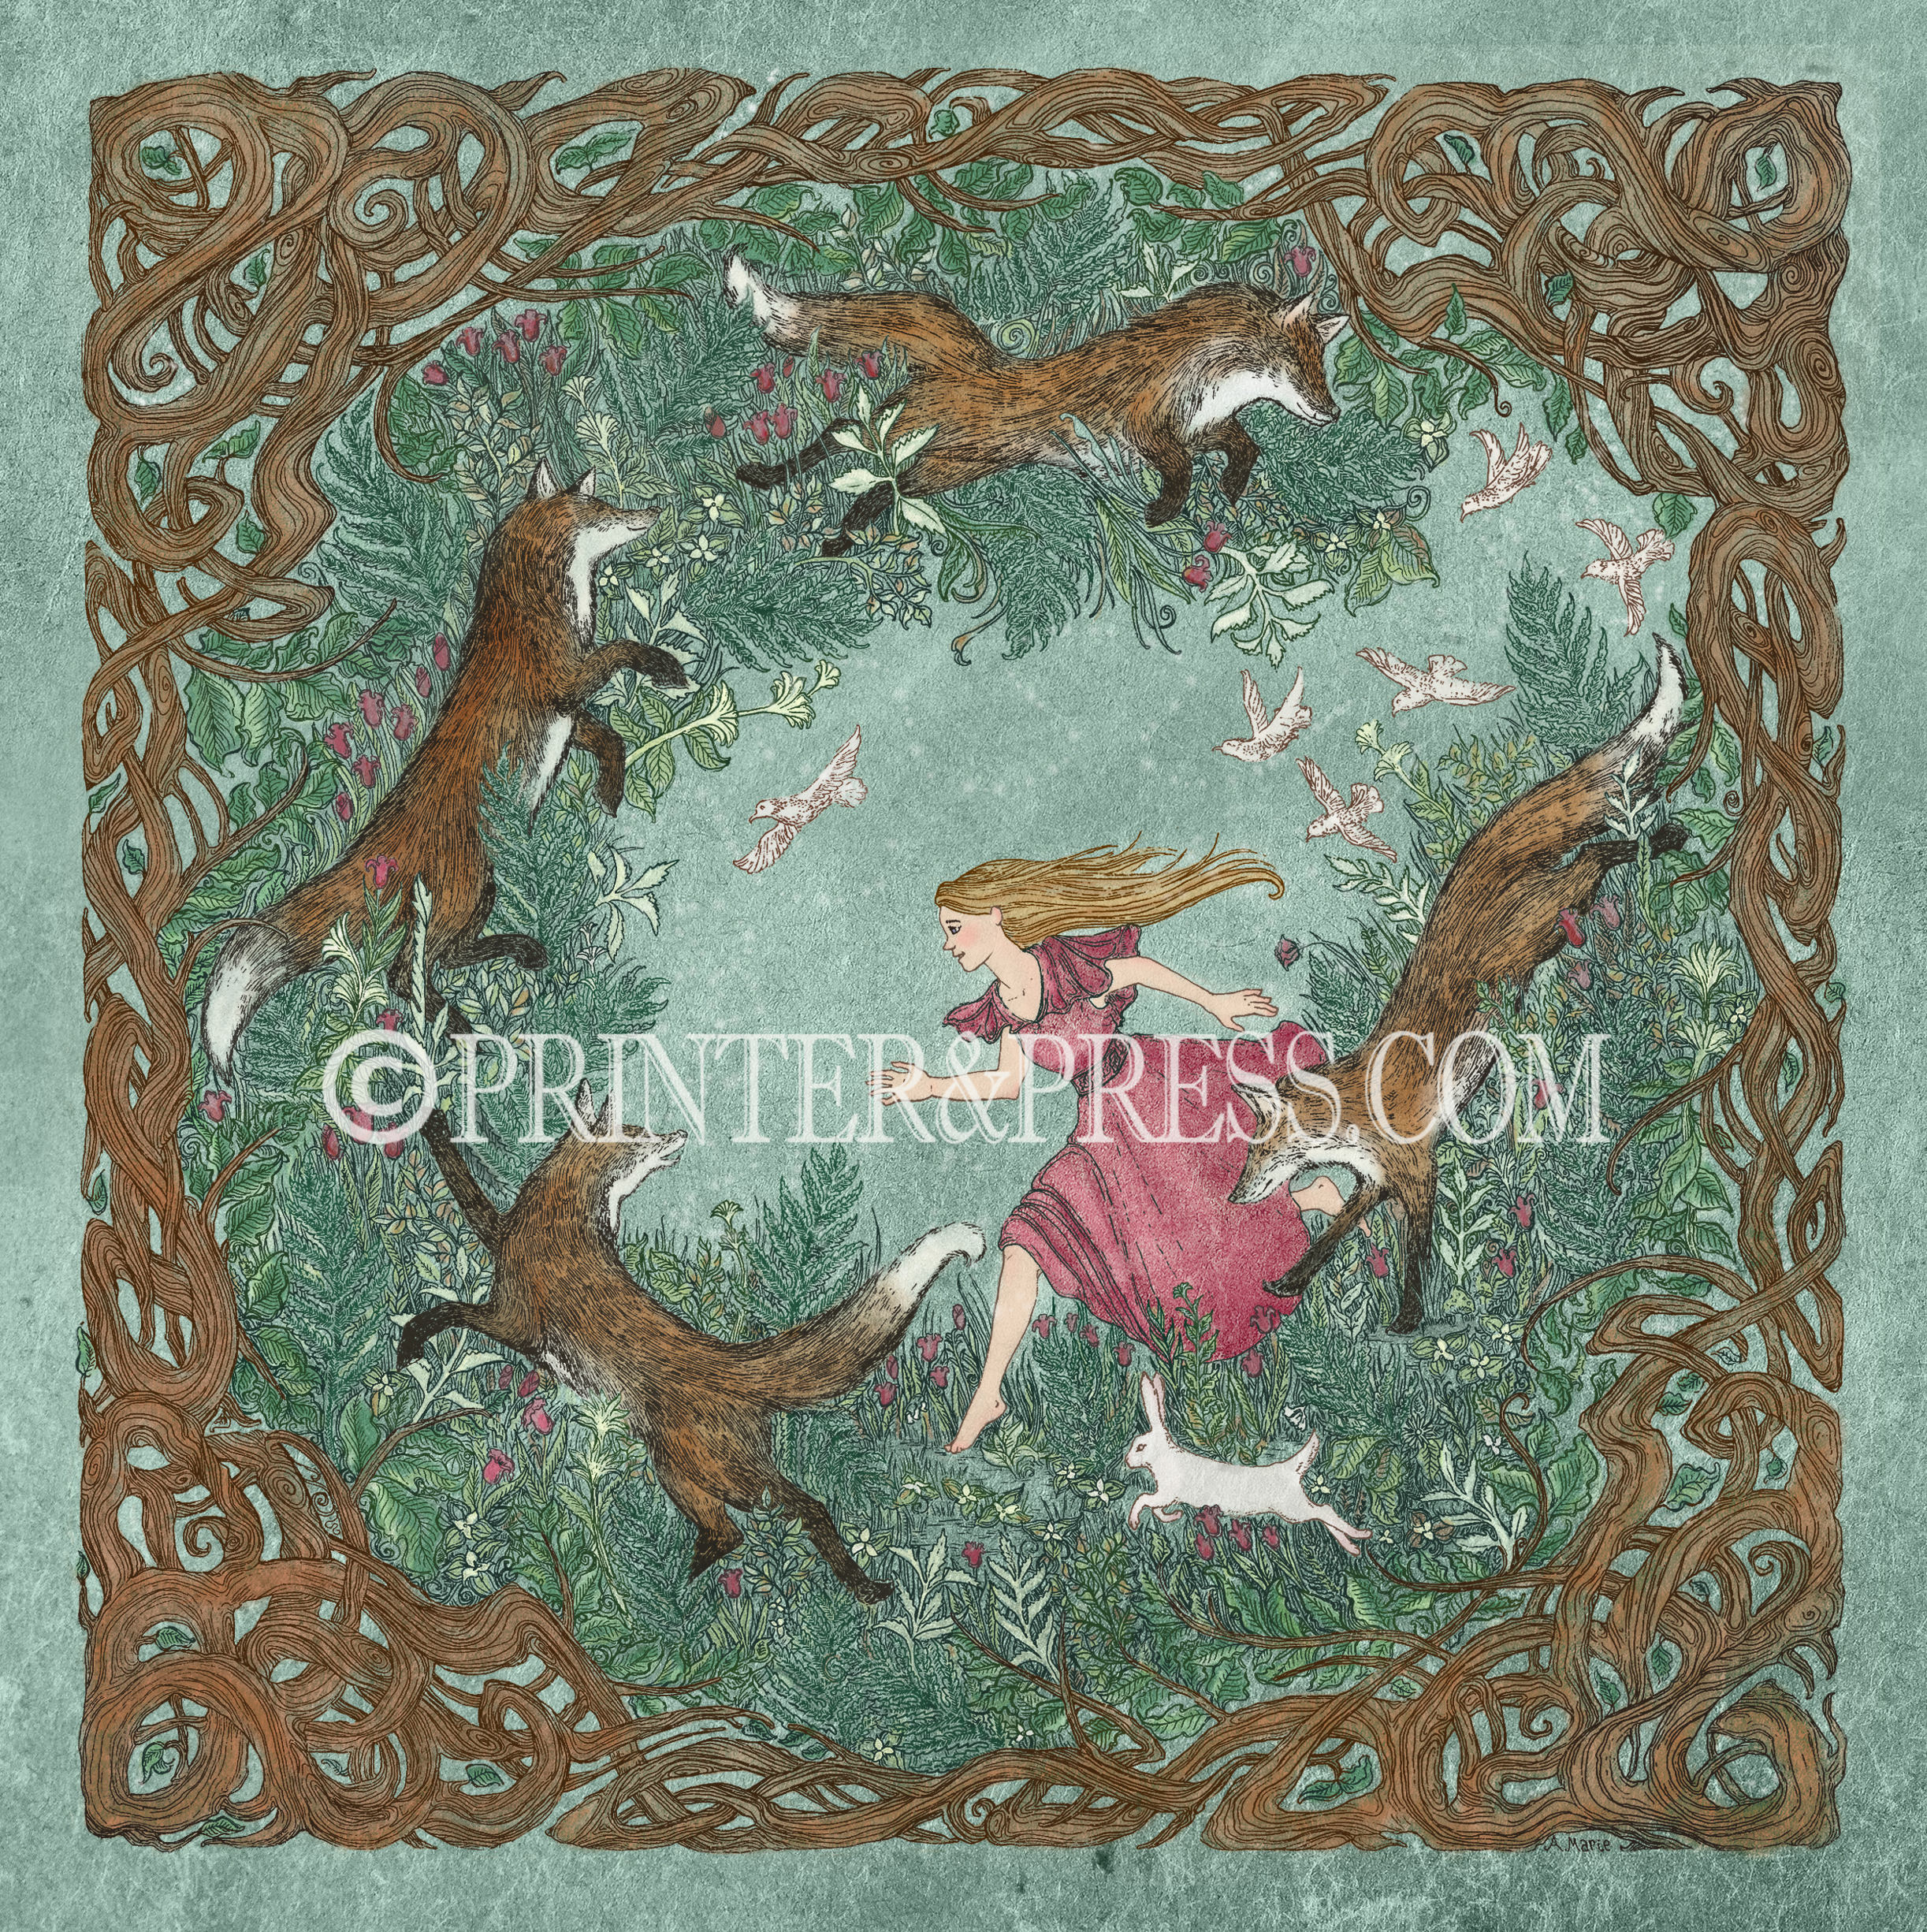 This young girl has found a magical spot in the tangled woods to frolic and play with four frisky foxes. The lovely greens, browns, pinks, and white colors add to the beauty of this digital print. The original drawing for this piece was made as an intaglio etching before being scanned and colored digitally in Photoshop.